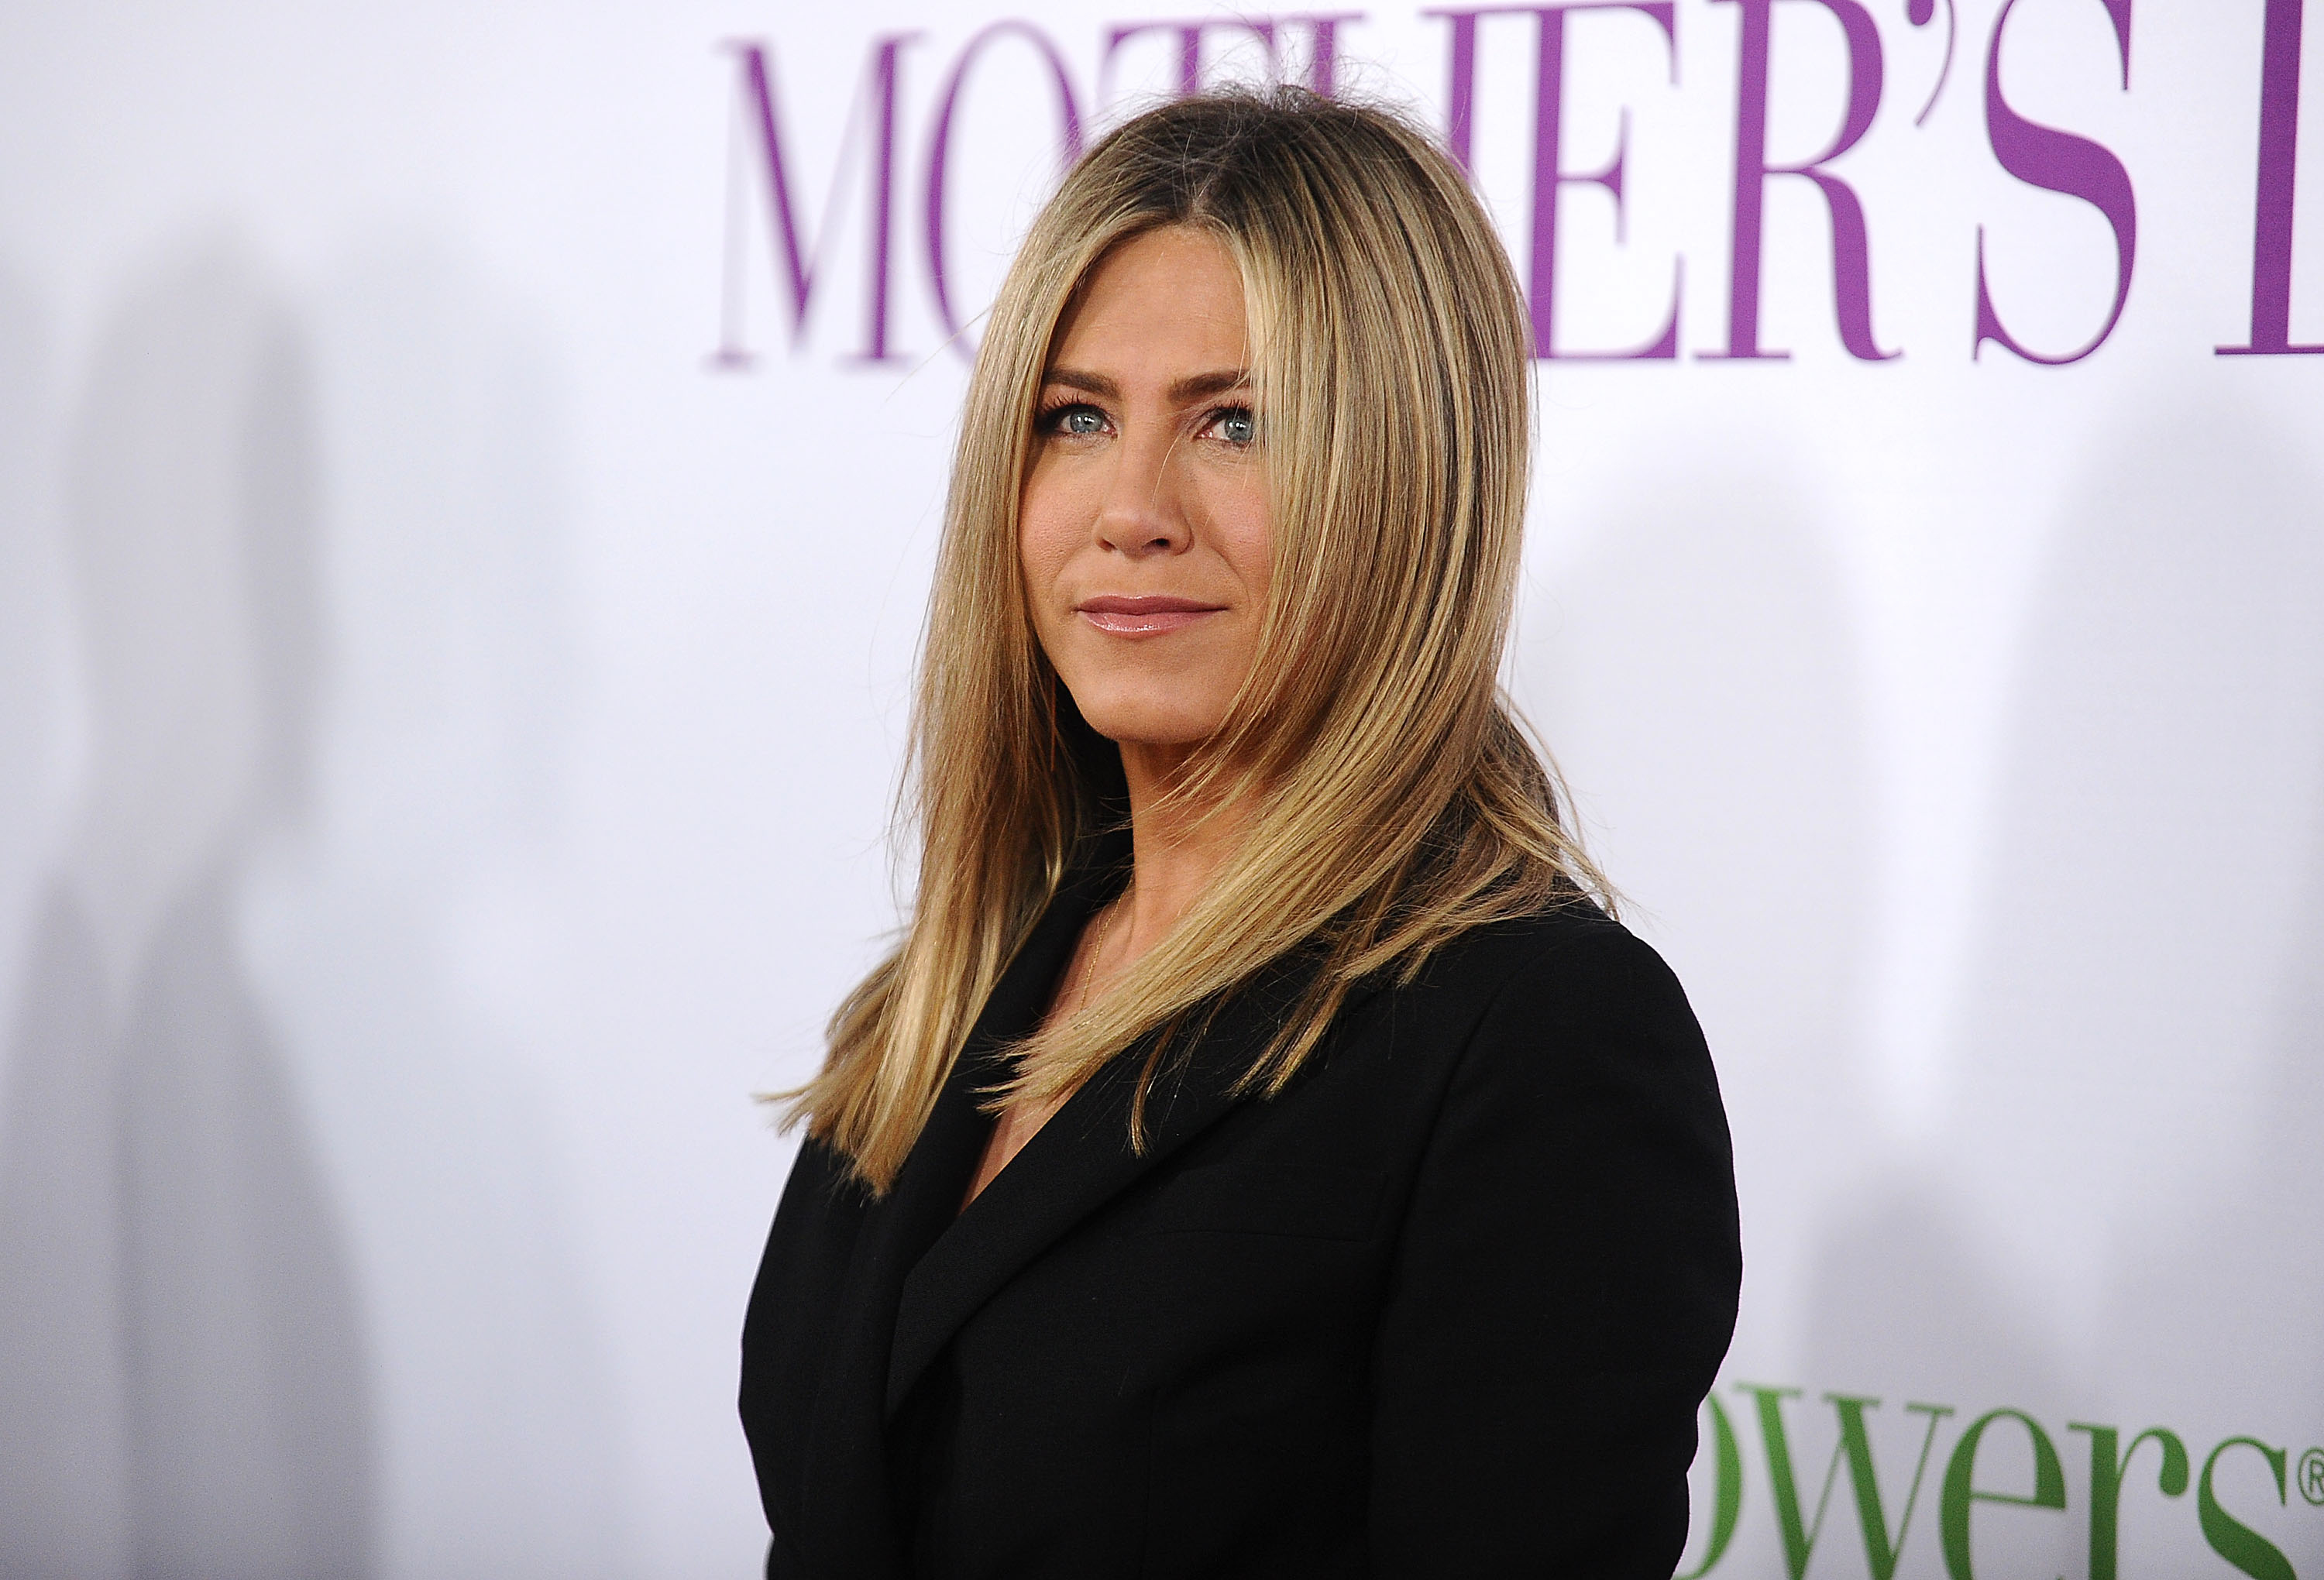 Actress Jennifer Aniston attends the premiere of  Mother's Day  at TCL Chinese Theatre IMAX on April 13, 2016 in Hollywood, California.